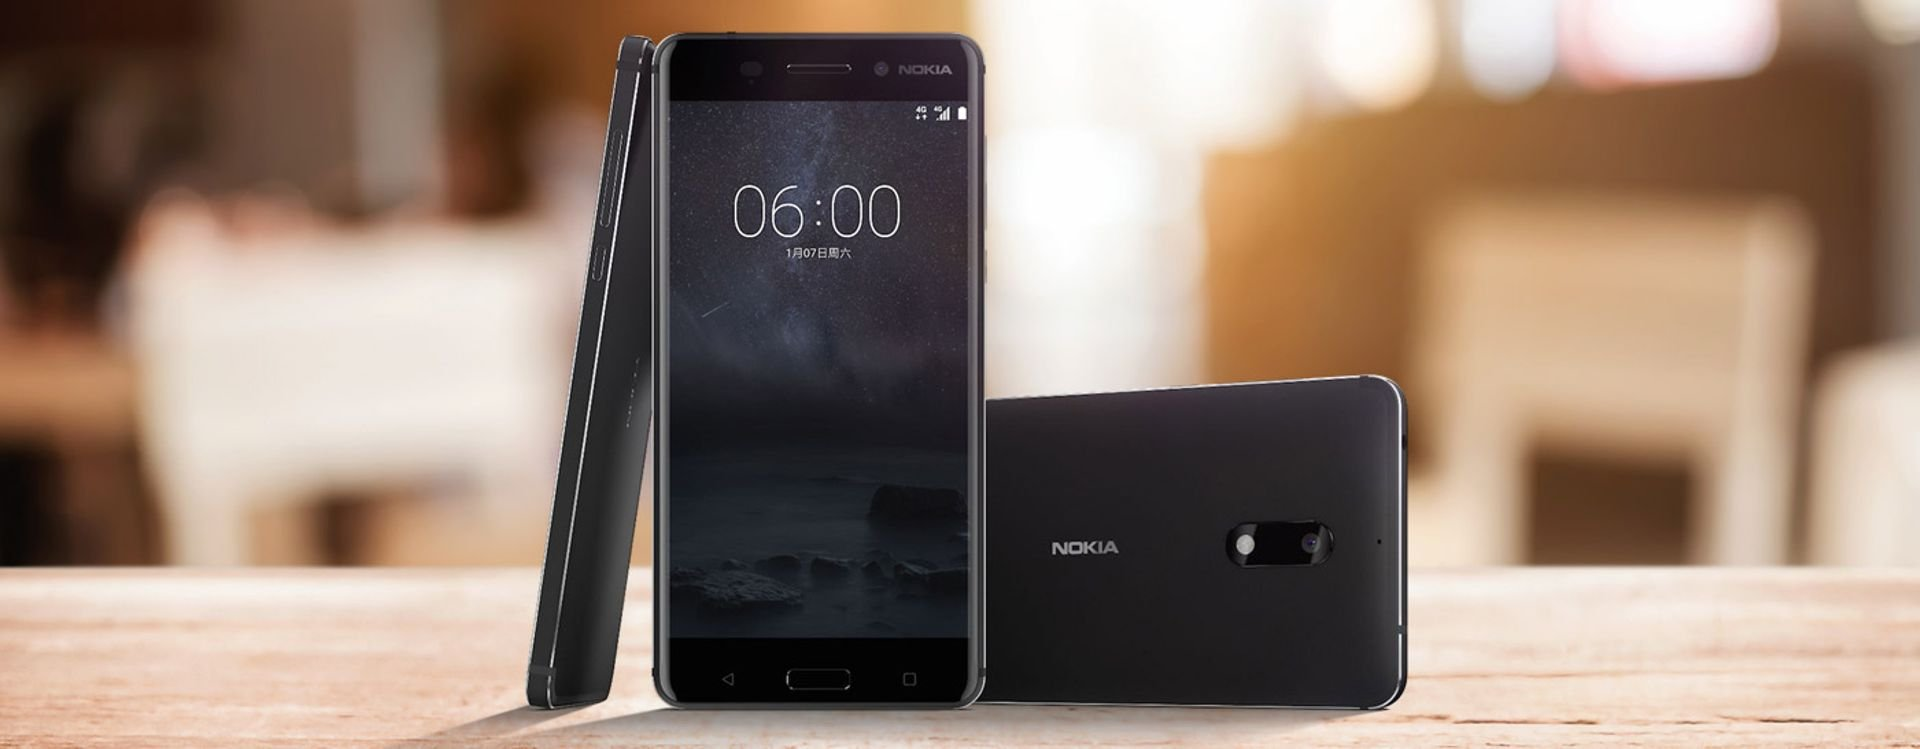 Only Days Separates Us from the Release of Nokia 6